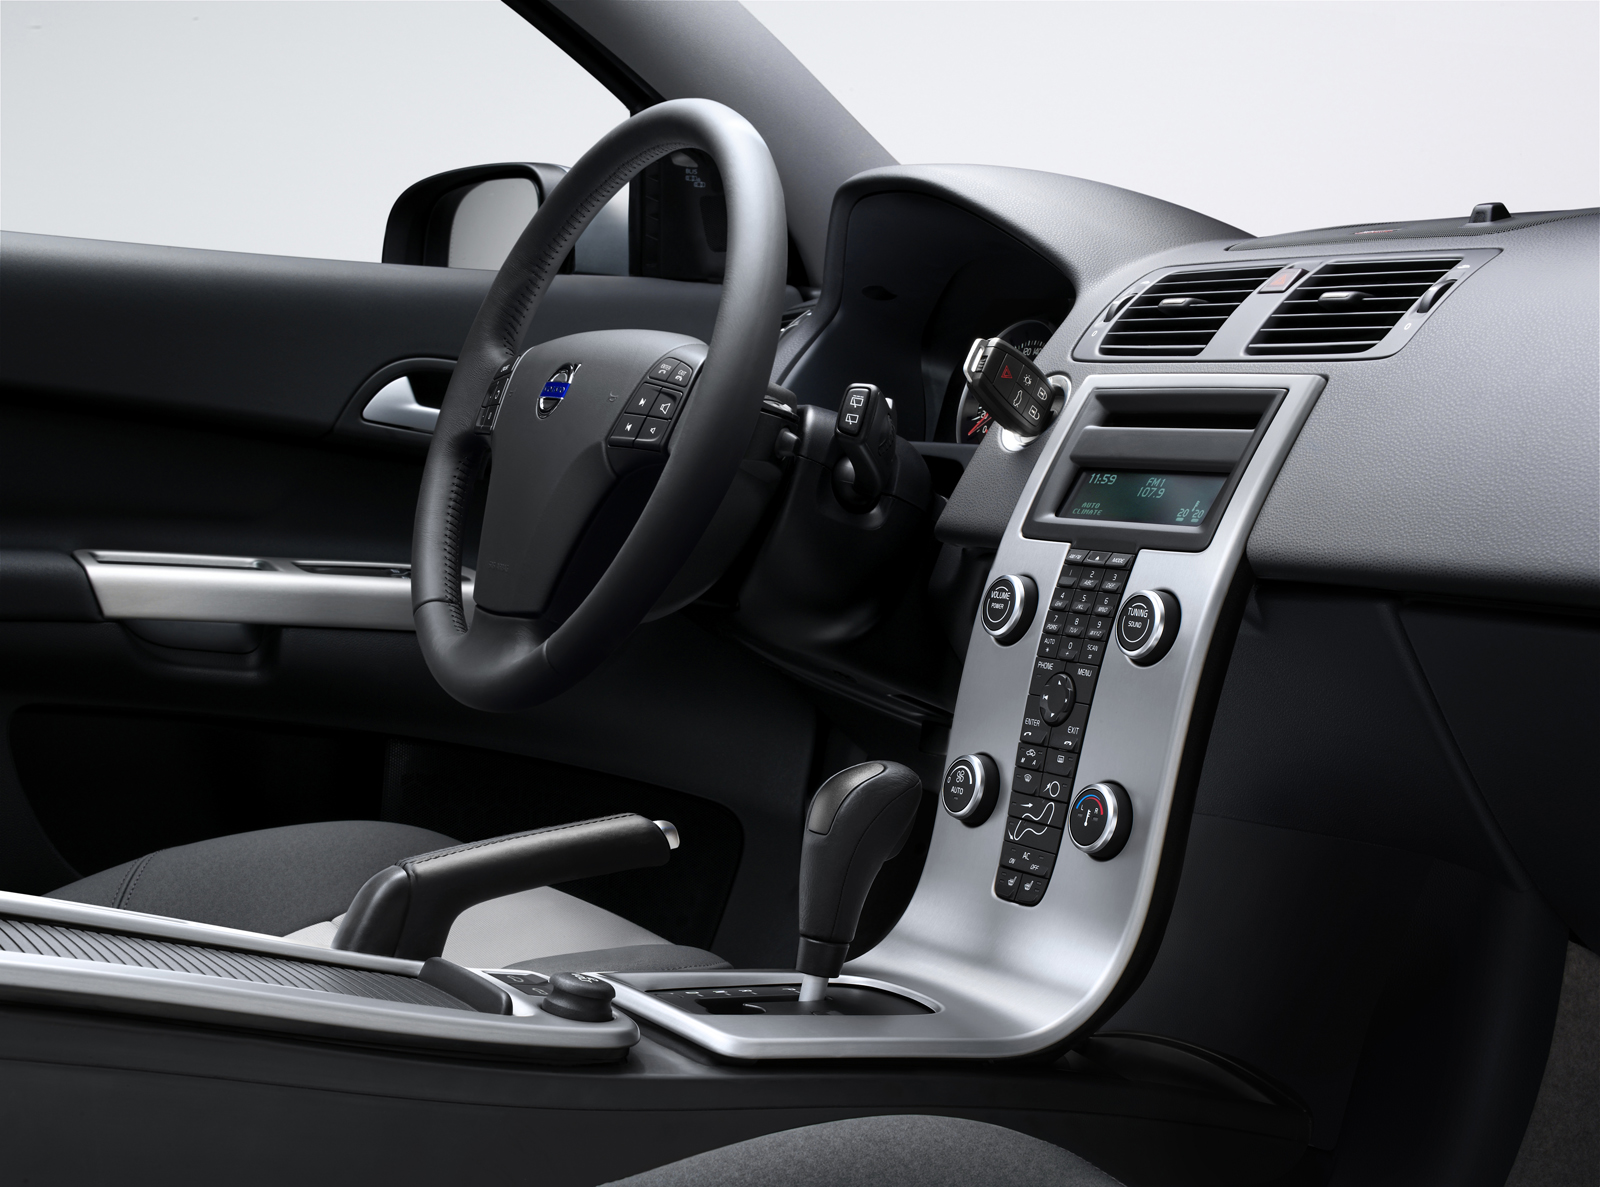 Volvo c30 interior design award picture 34452 for Centre de nettoyage interieur voiture